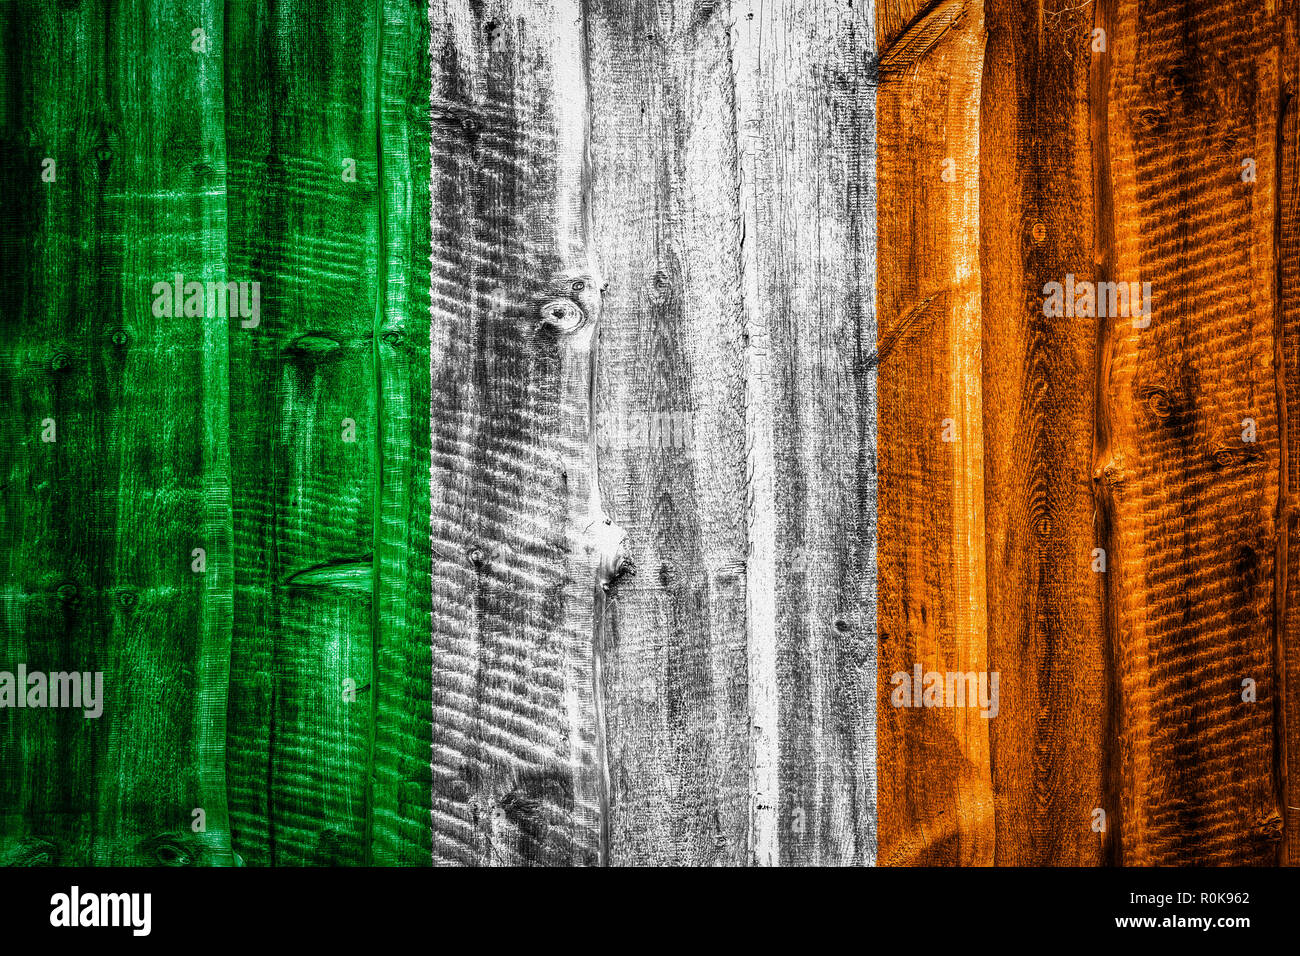 National flag of Ireland on textured wooden background, fence or wall - Stock Image